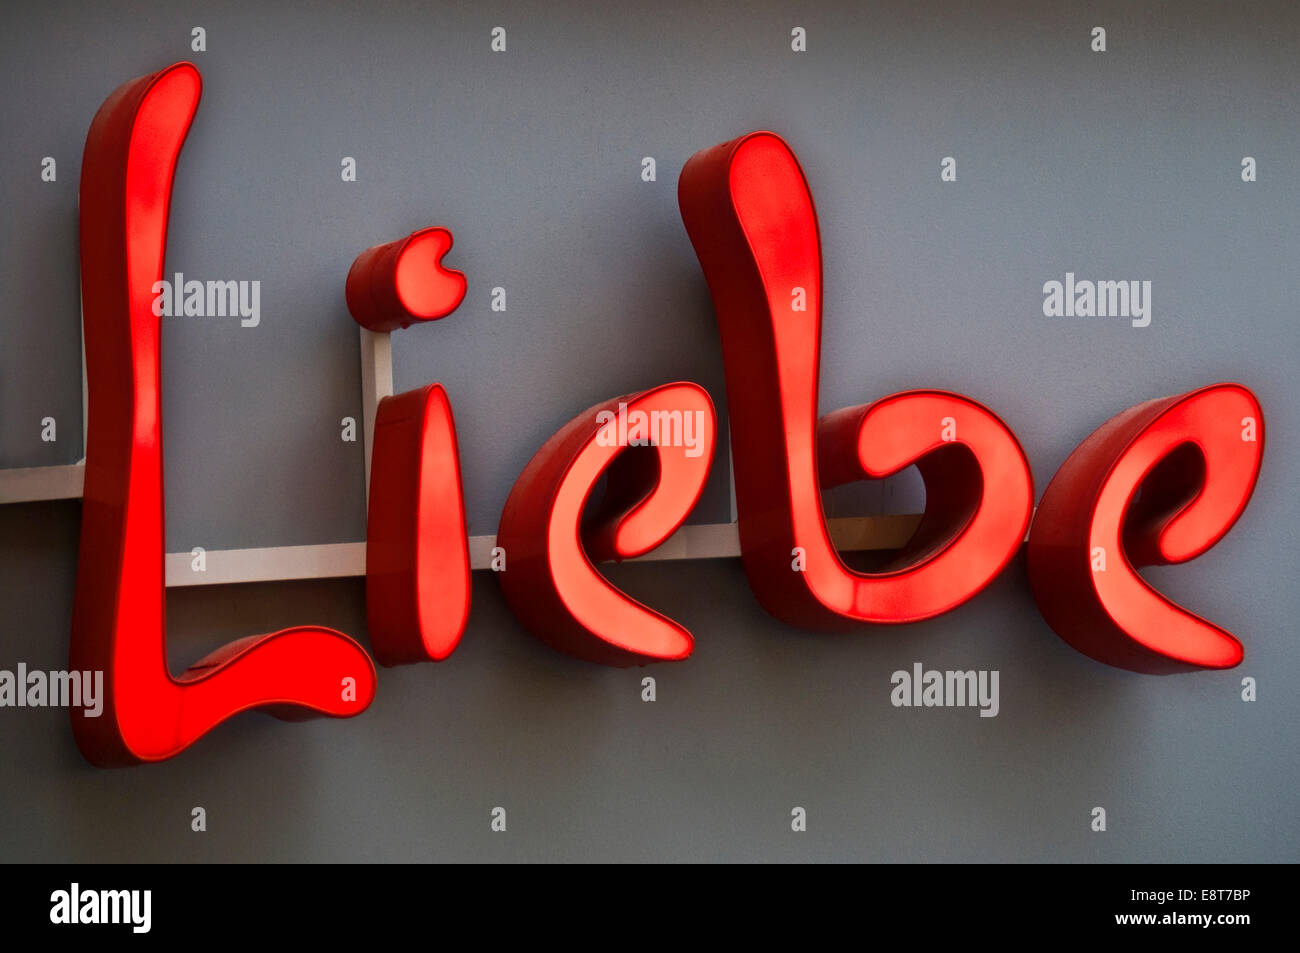 Neon Sign With The Word Liebe German For Love Stock